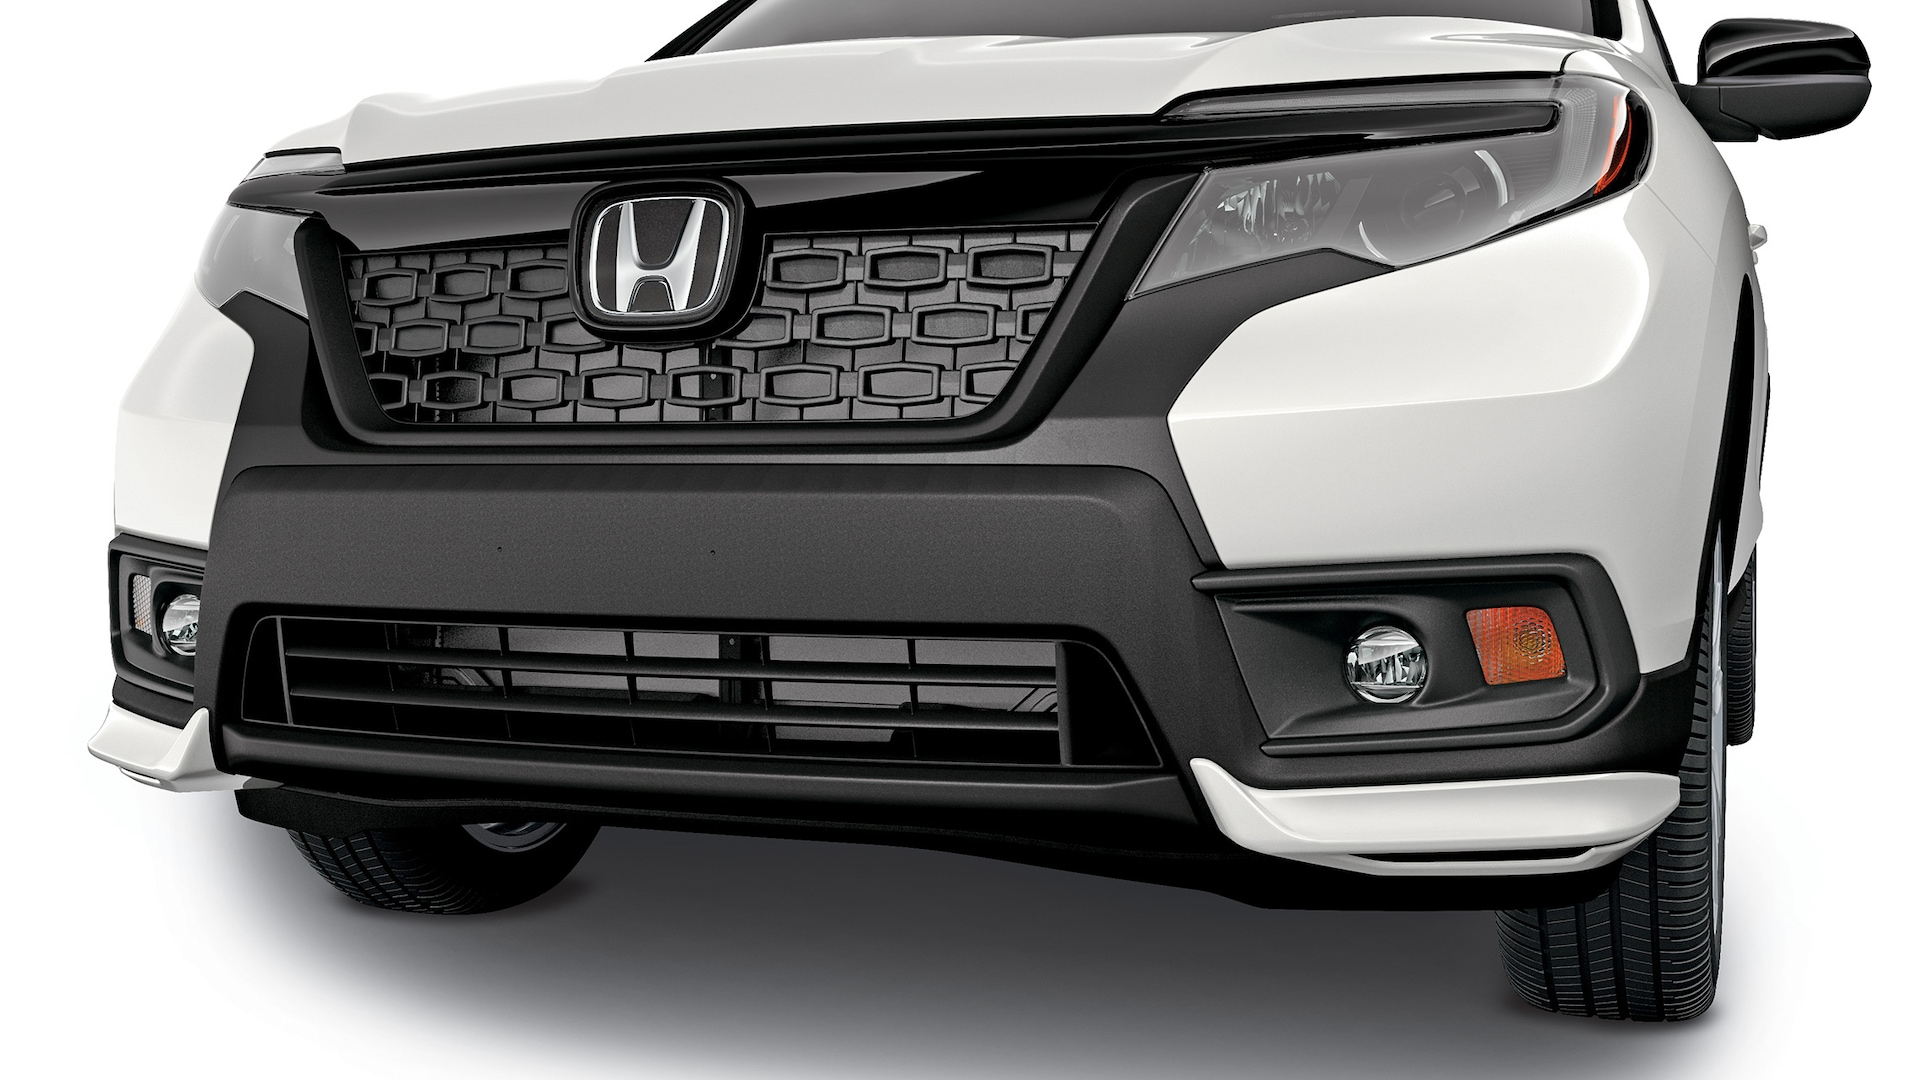 Detail of accessory front underbody spoiler on the 2020 Honda Passport.